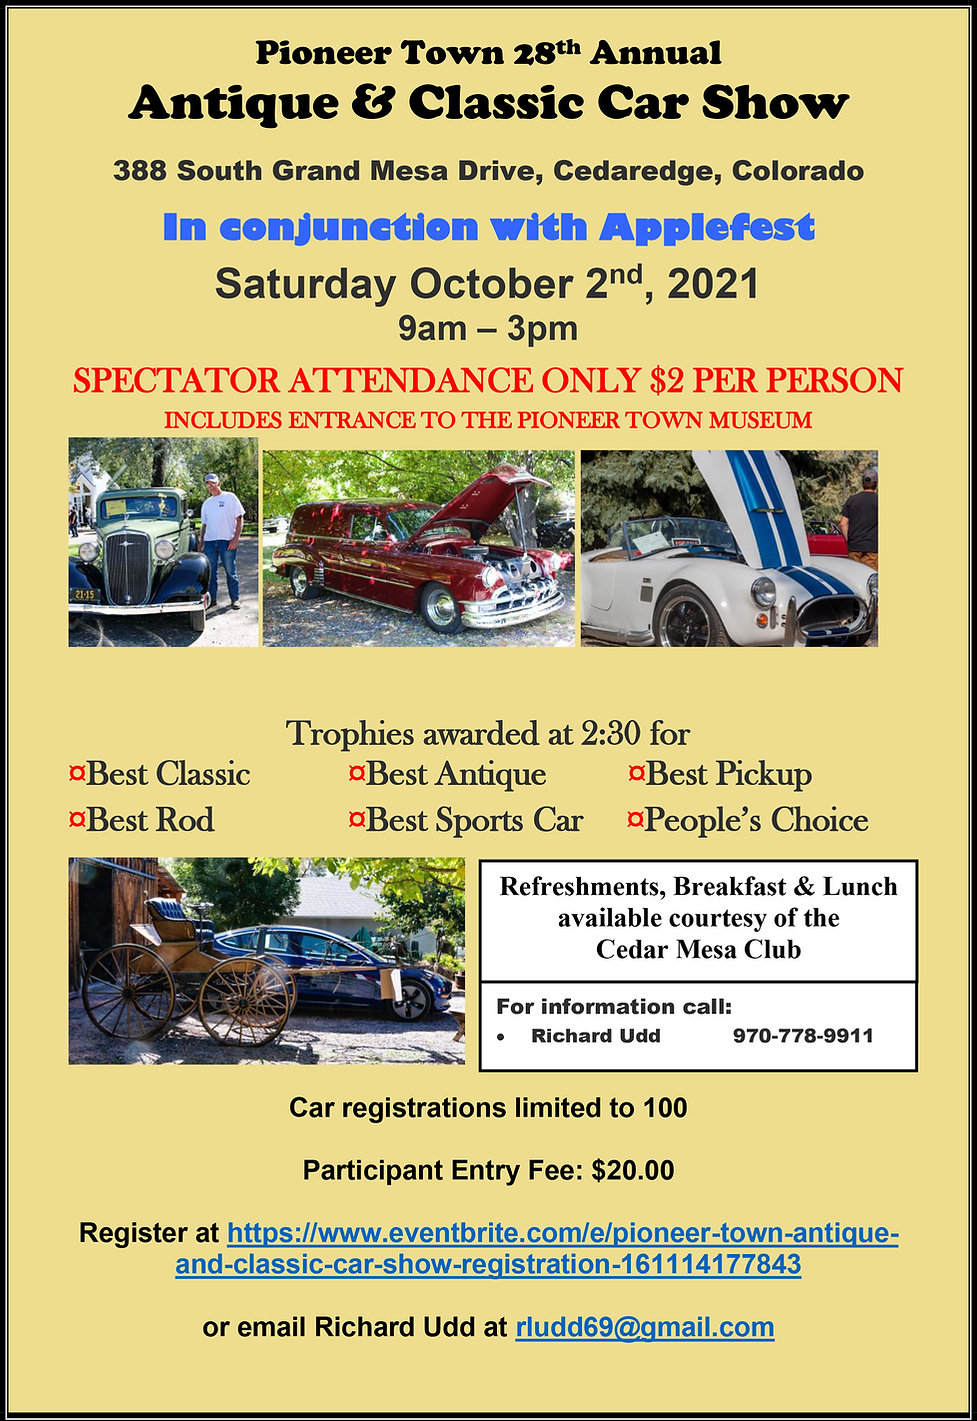 Pioneer Town Antique and Classic Car Show 21 flyer (1).jpg